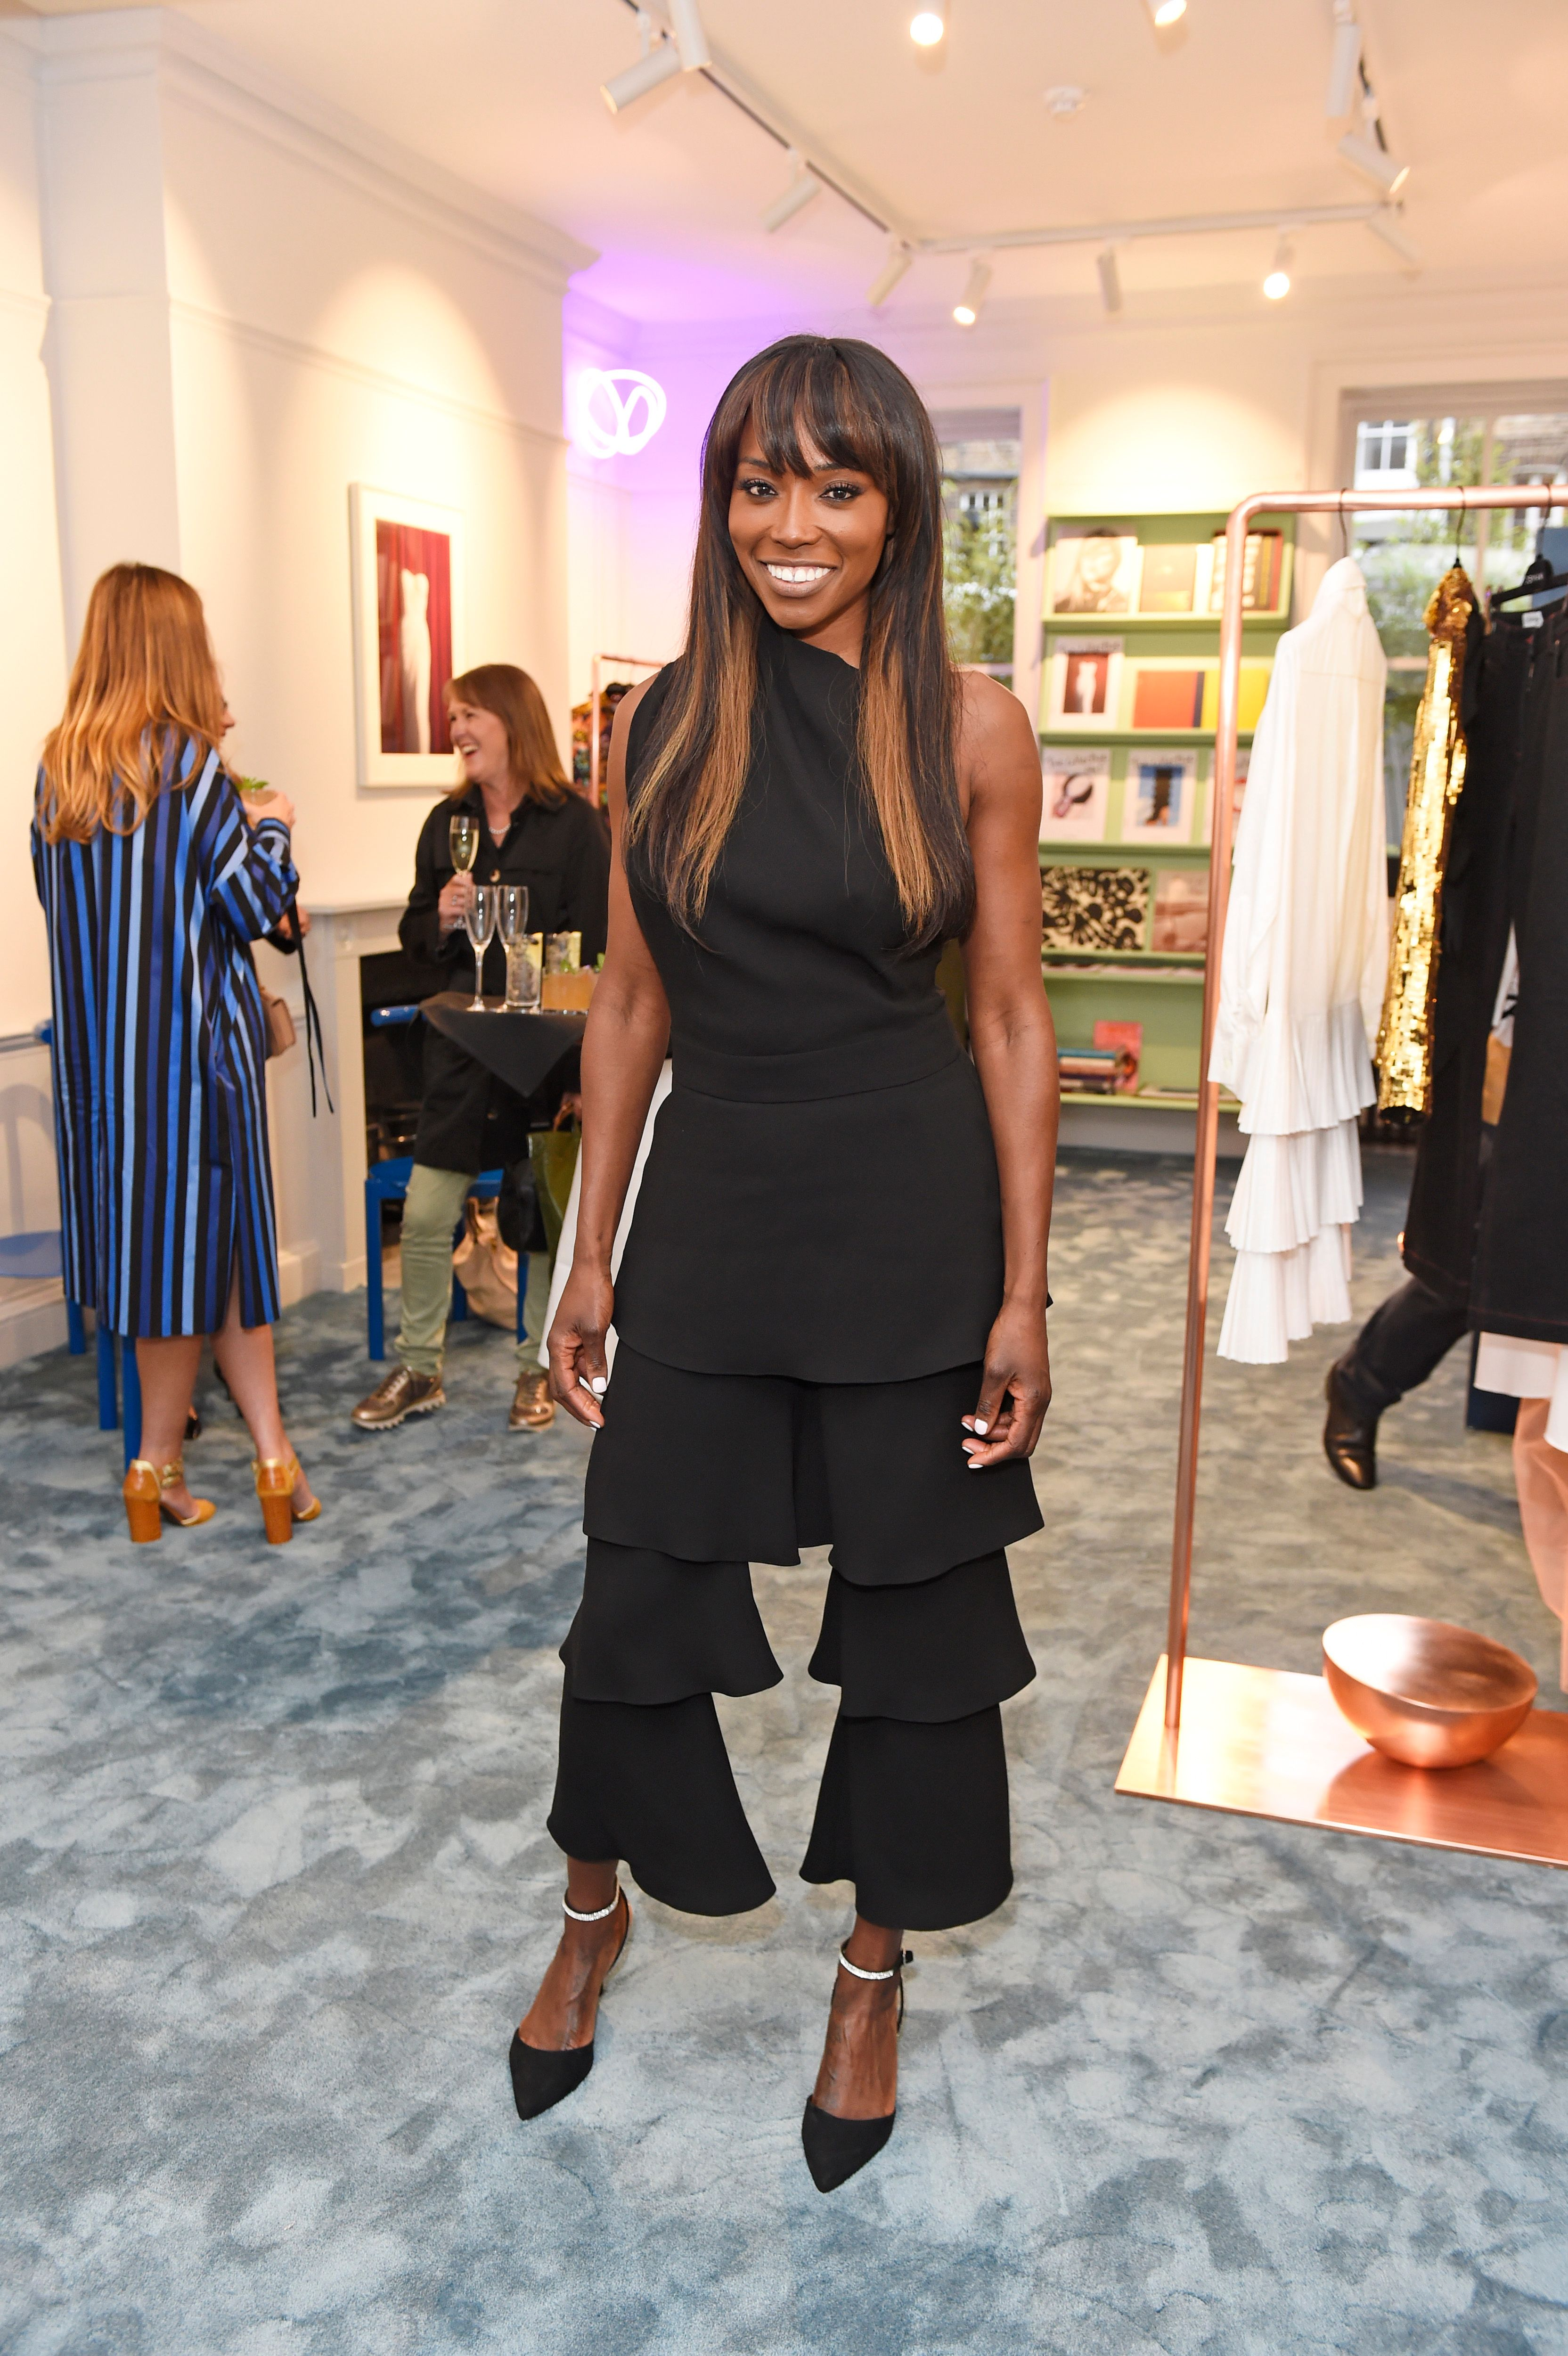 Lorraine Pascale at the House Of Osman launch party in 2018 in London, England | Source: Getty Images